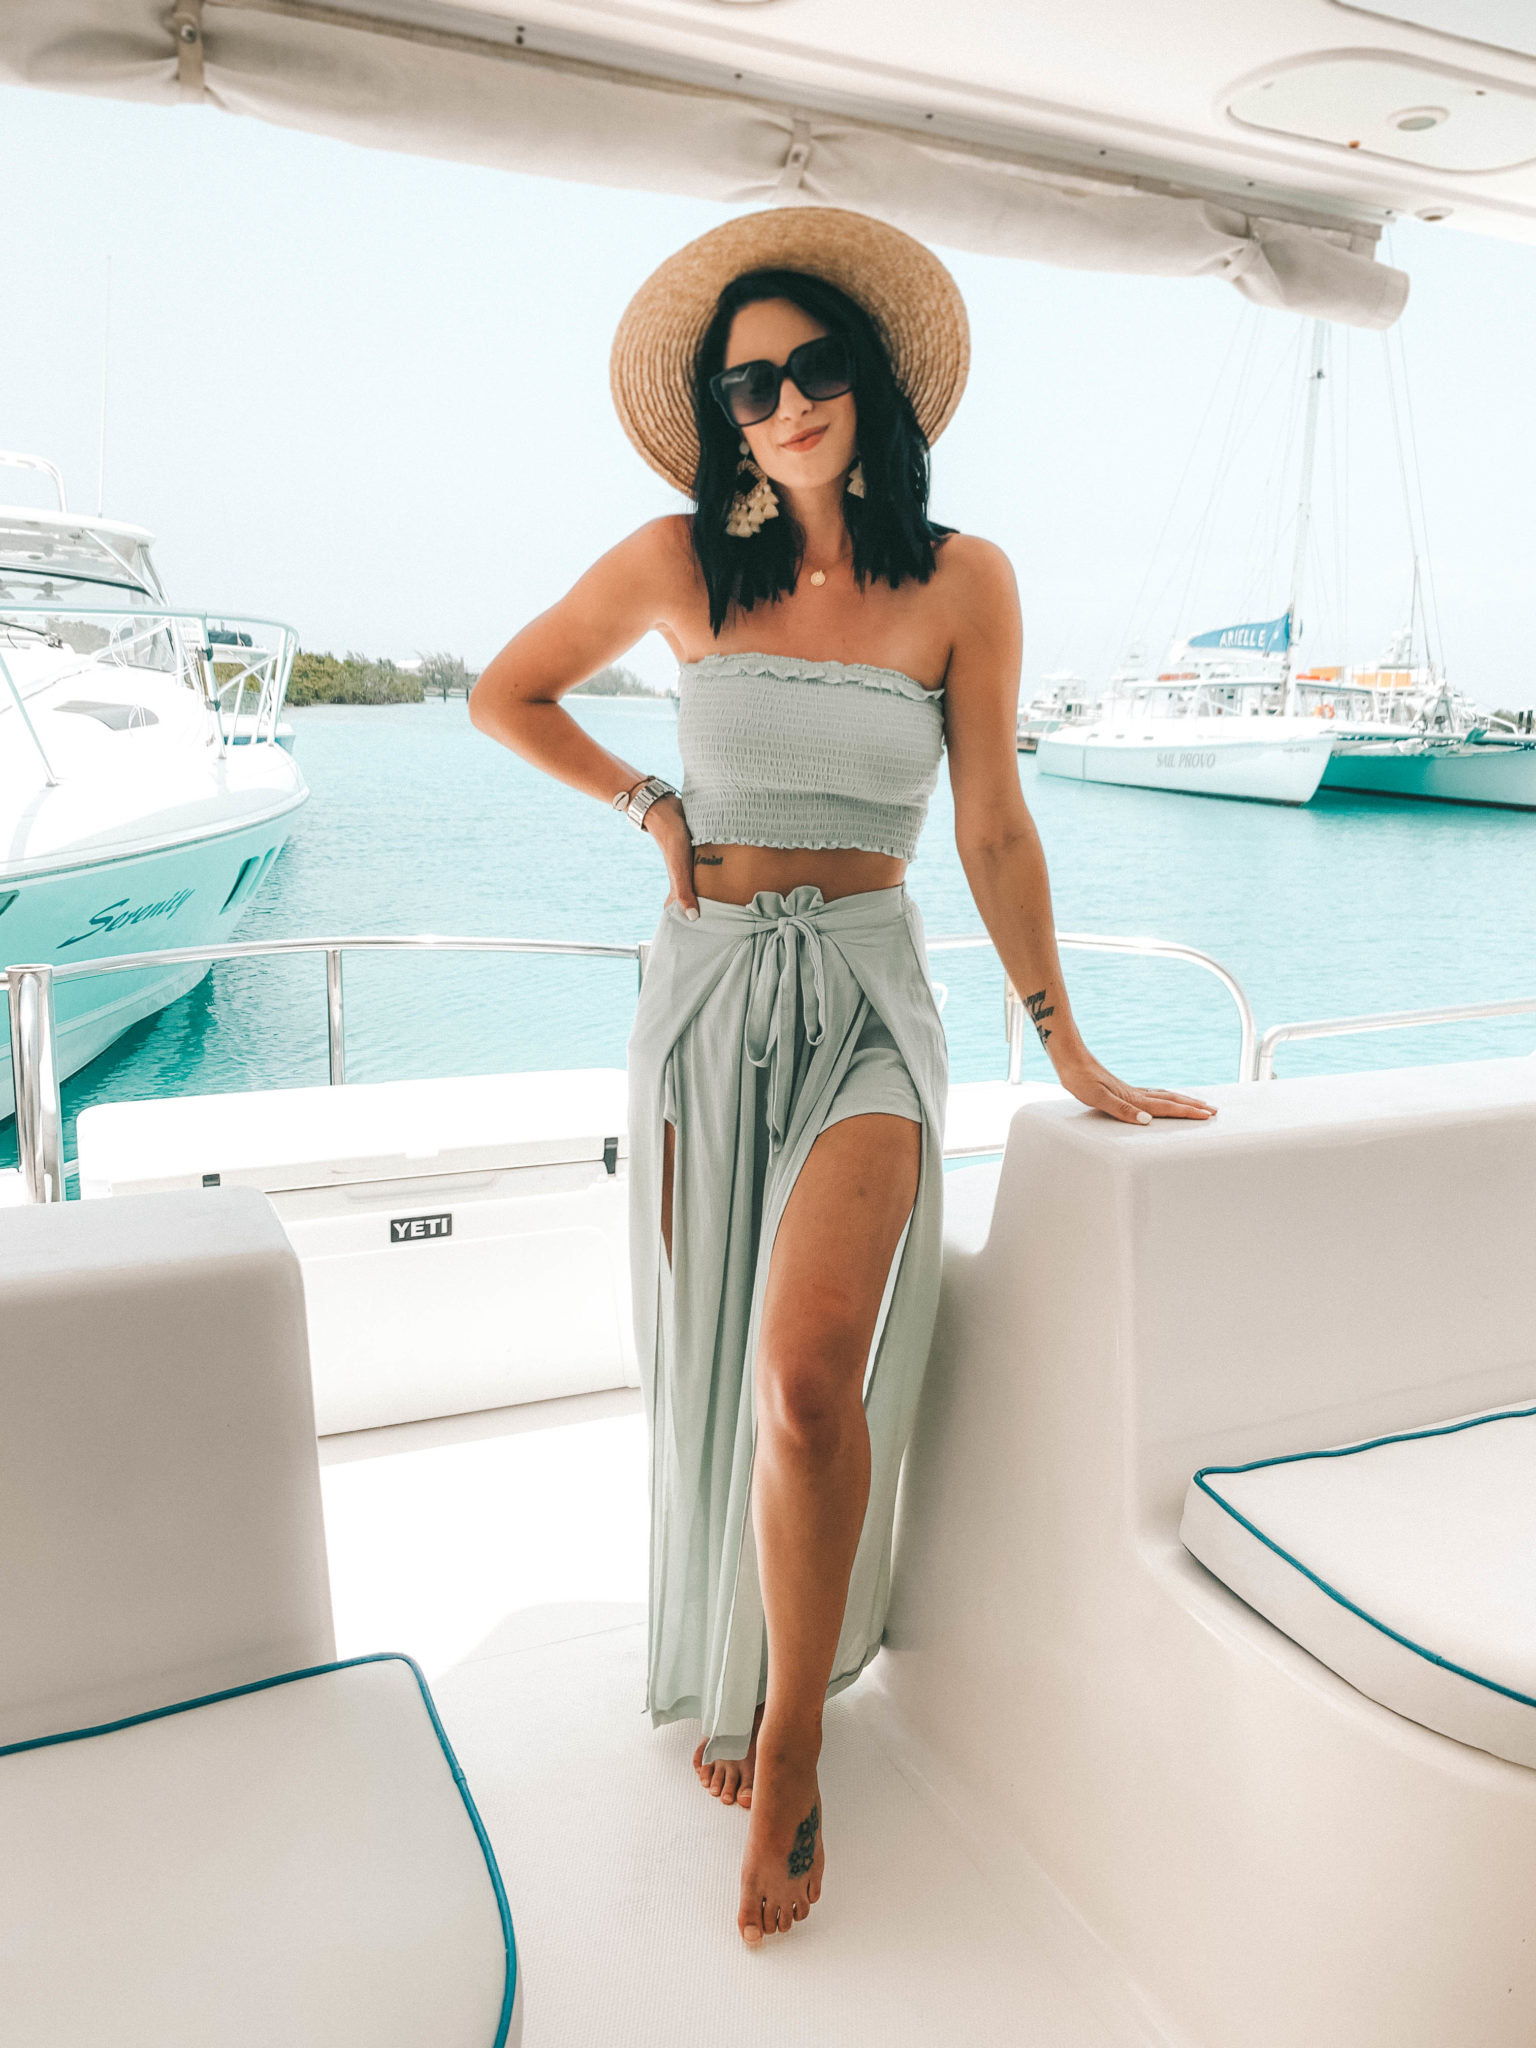 Amaryllis Apparel Abroad Turks & Caicos Summer Try-On by popular Austin fashion blog, Dressed to Kill: image of a woman standing on a boat in Turks and Caicos and wearing an Amaryllis Apparel Aruba set.